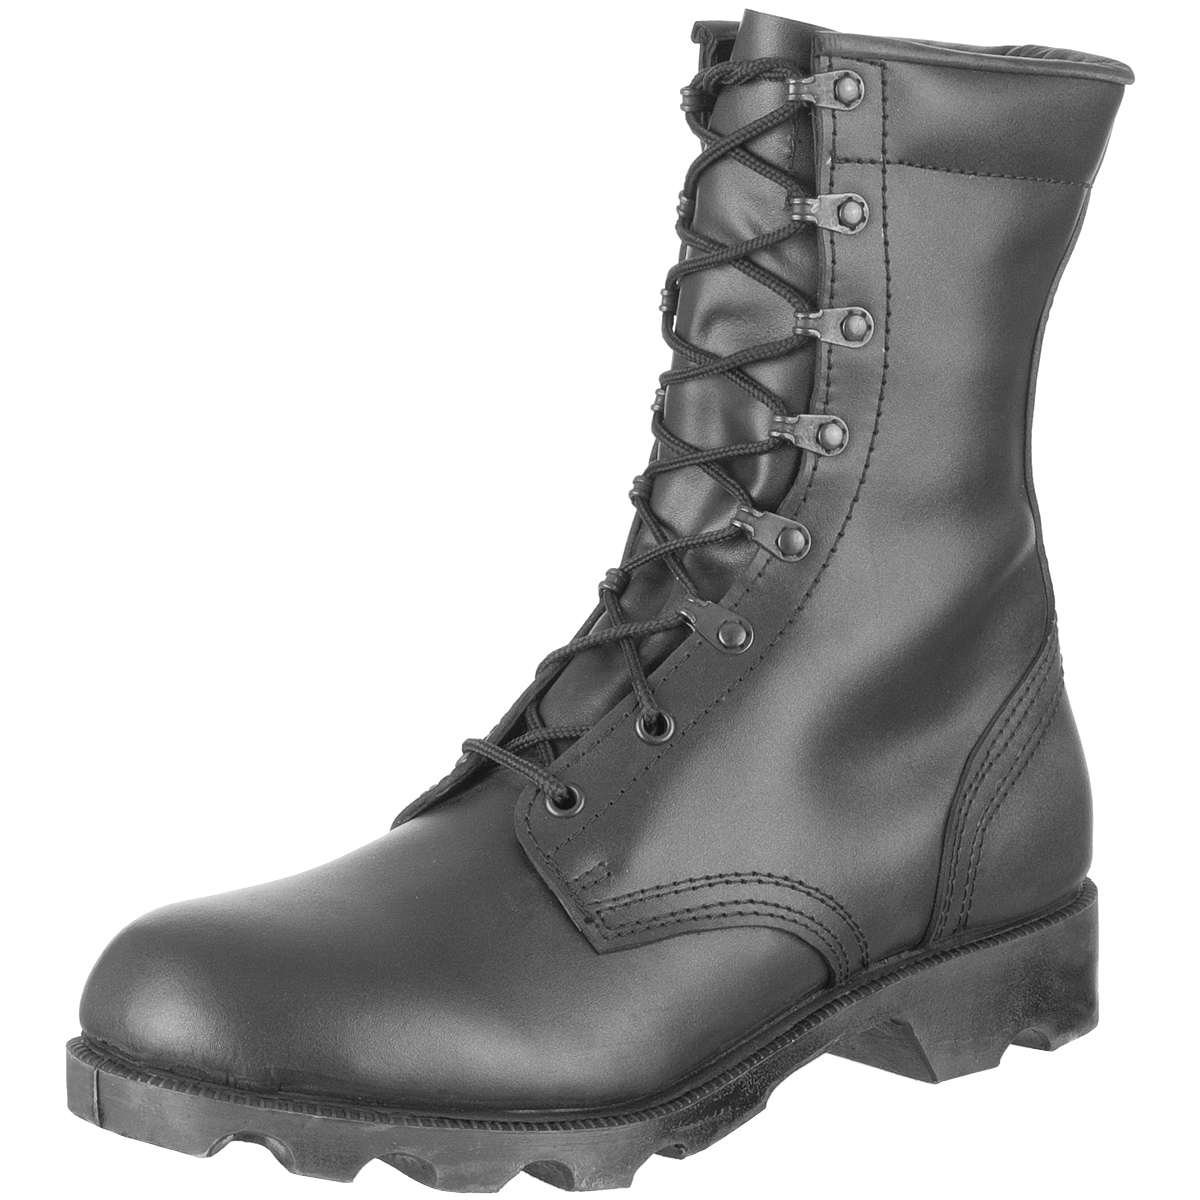 Speed Lace Combat Boots Black | Boots | Military 1st